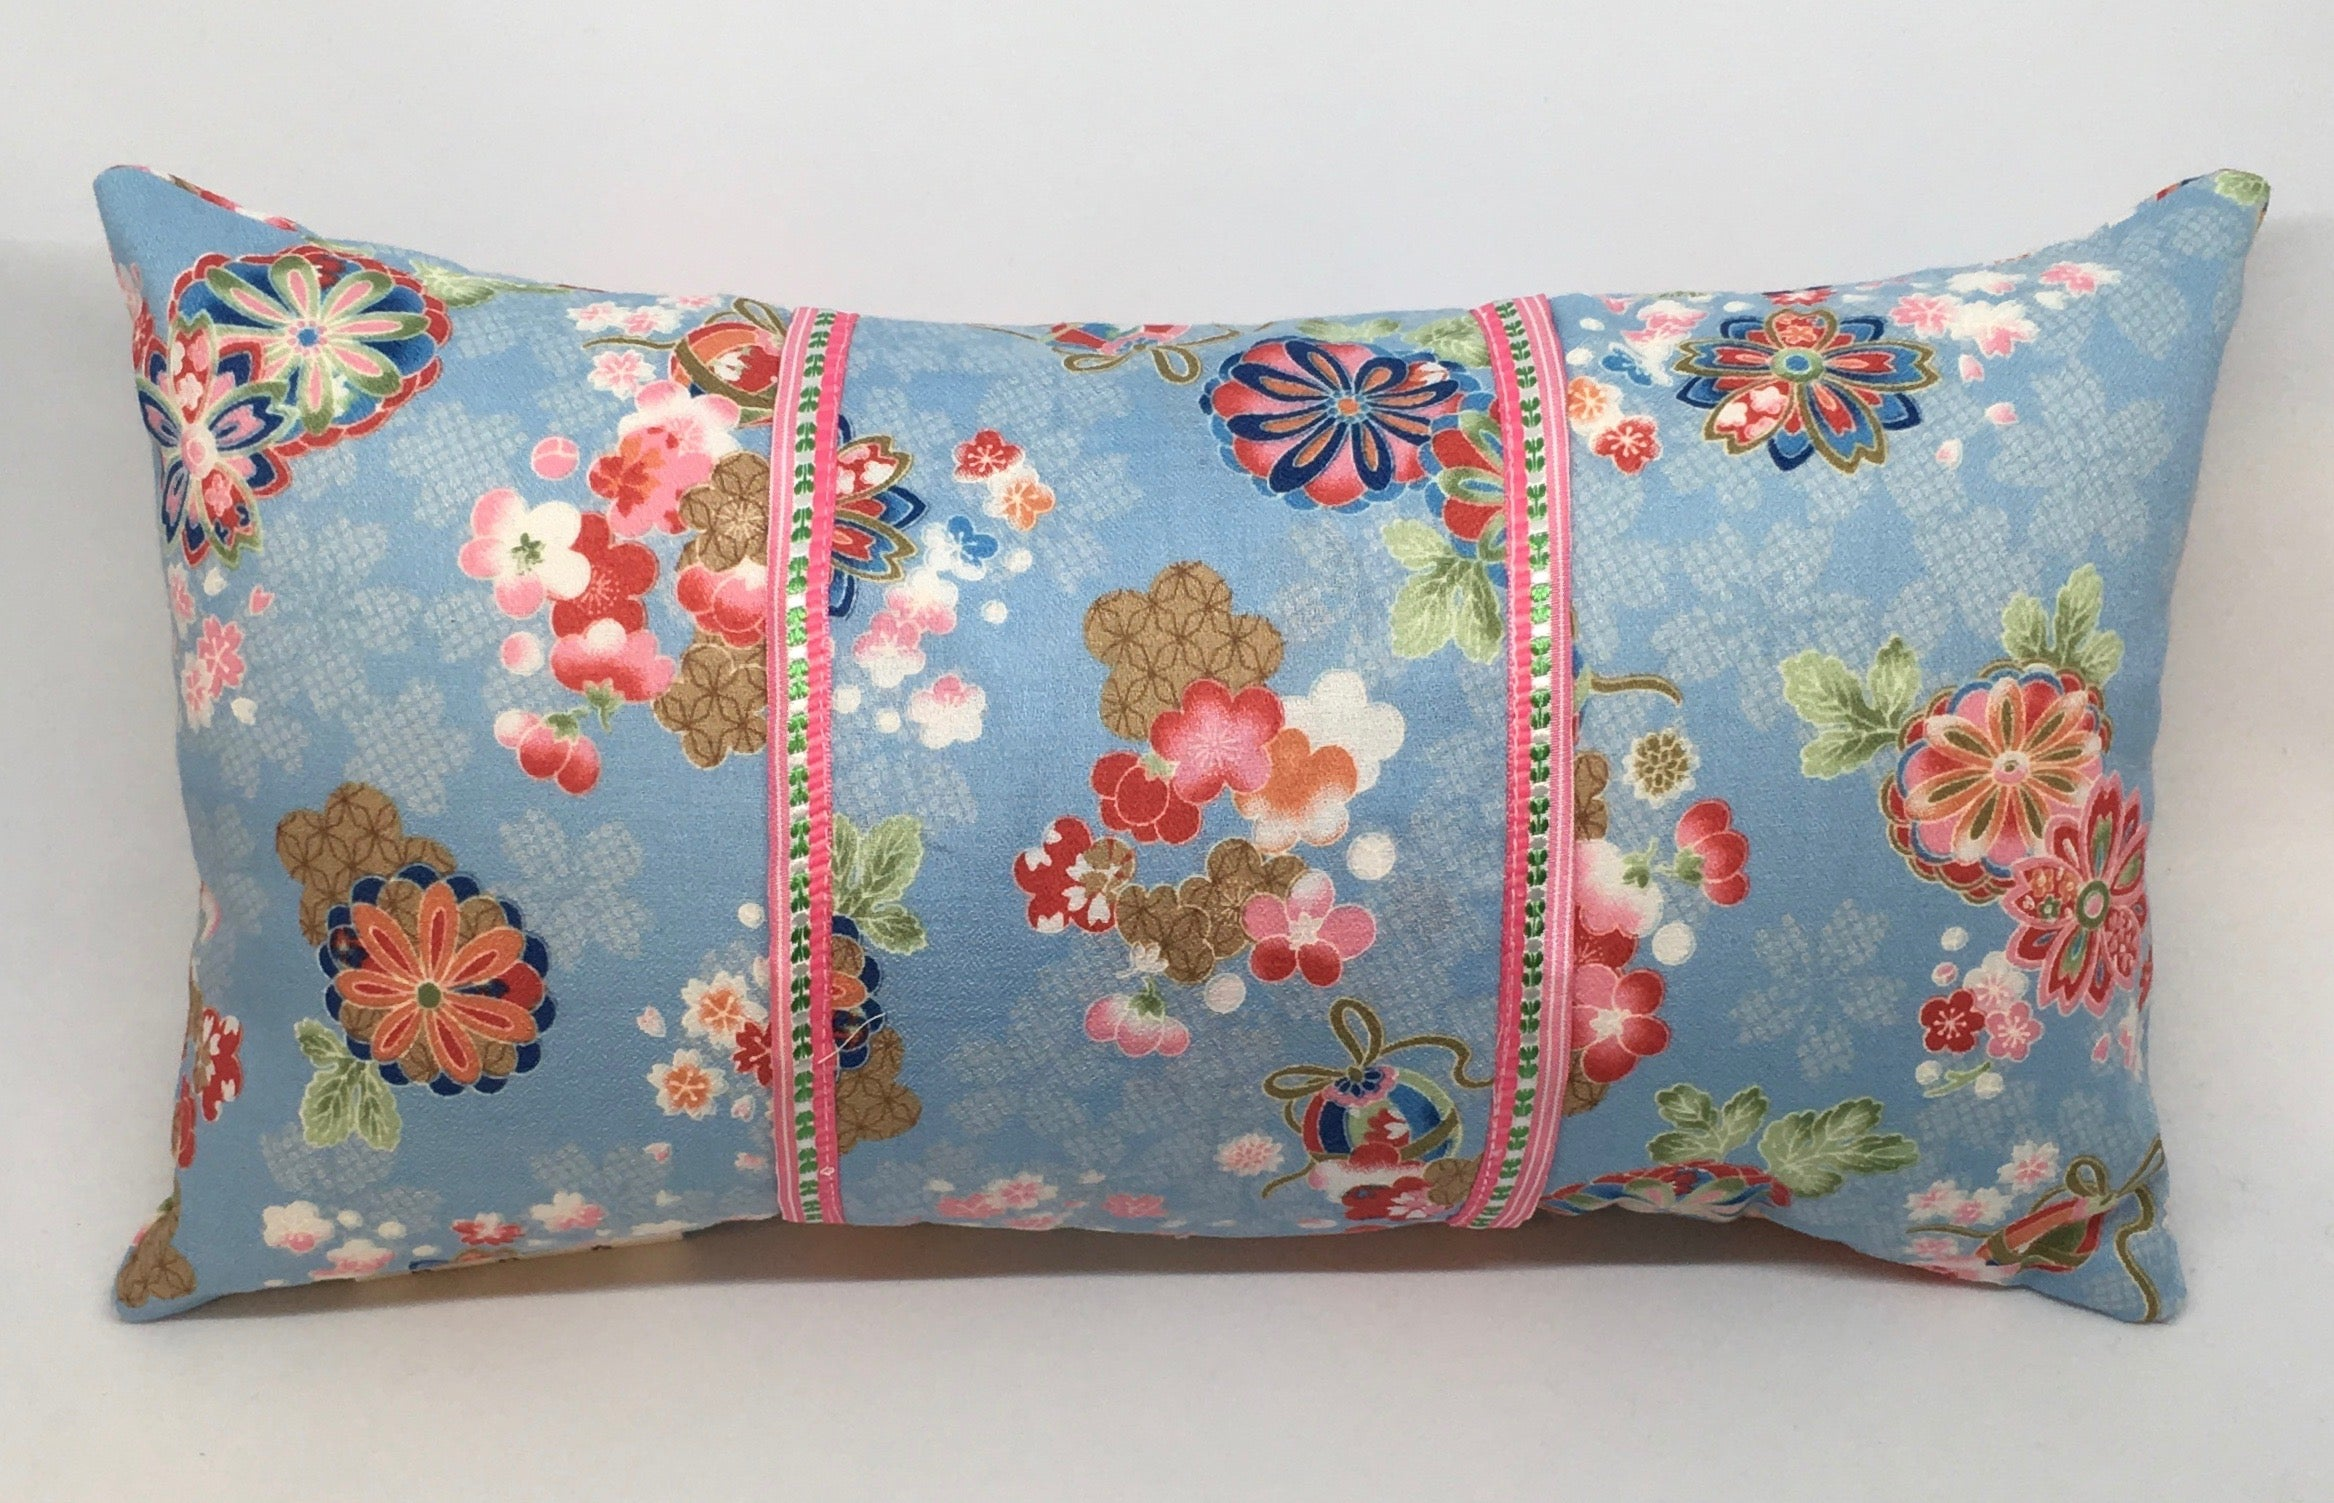 Floral with Vintage Trim -  Pillow Pocket for your Intentions